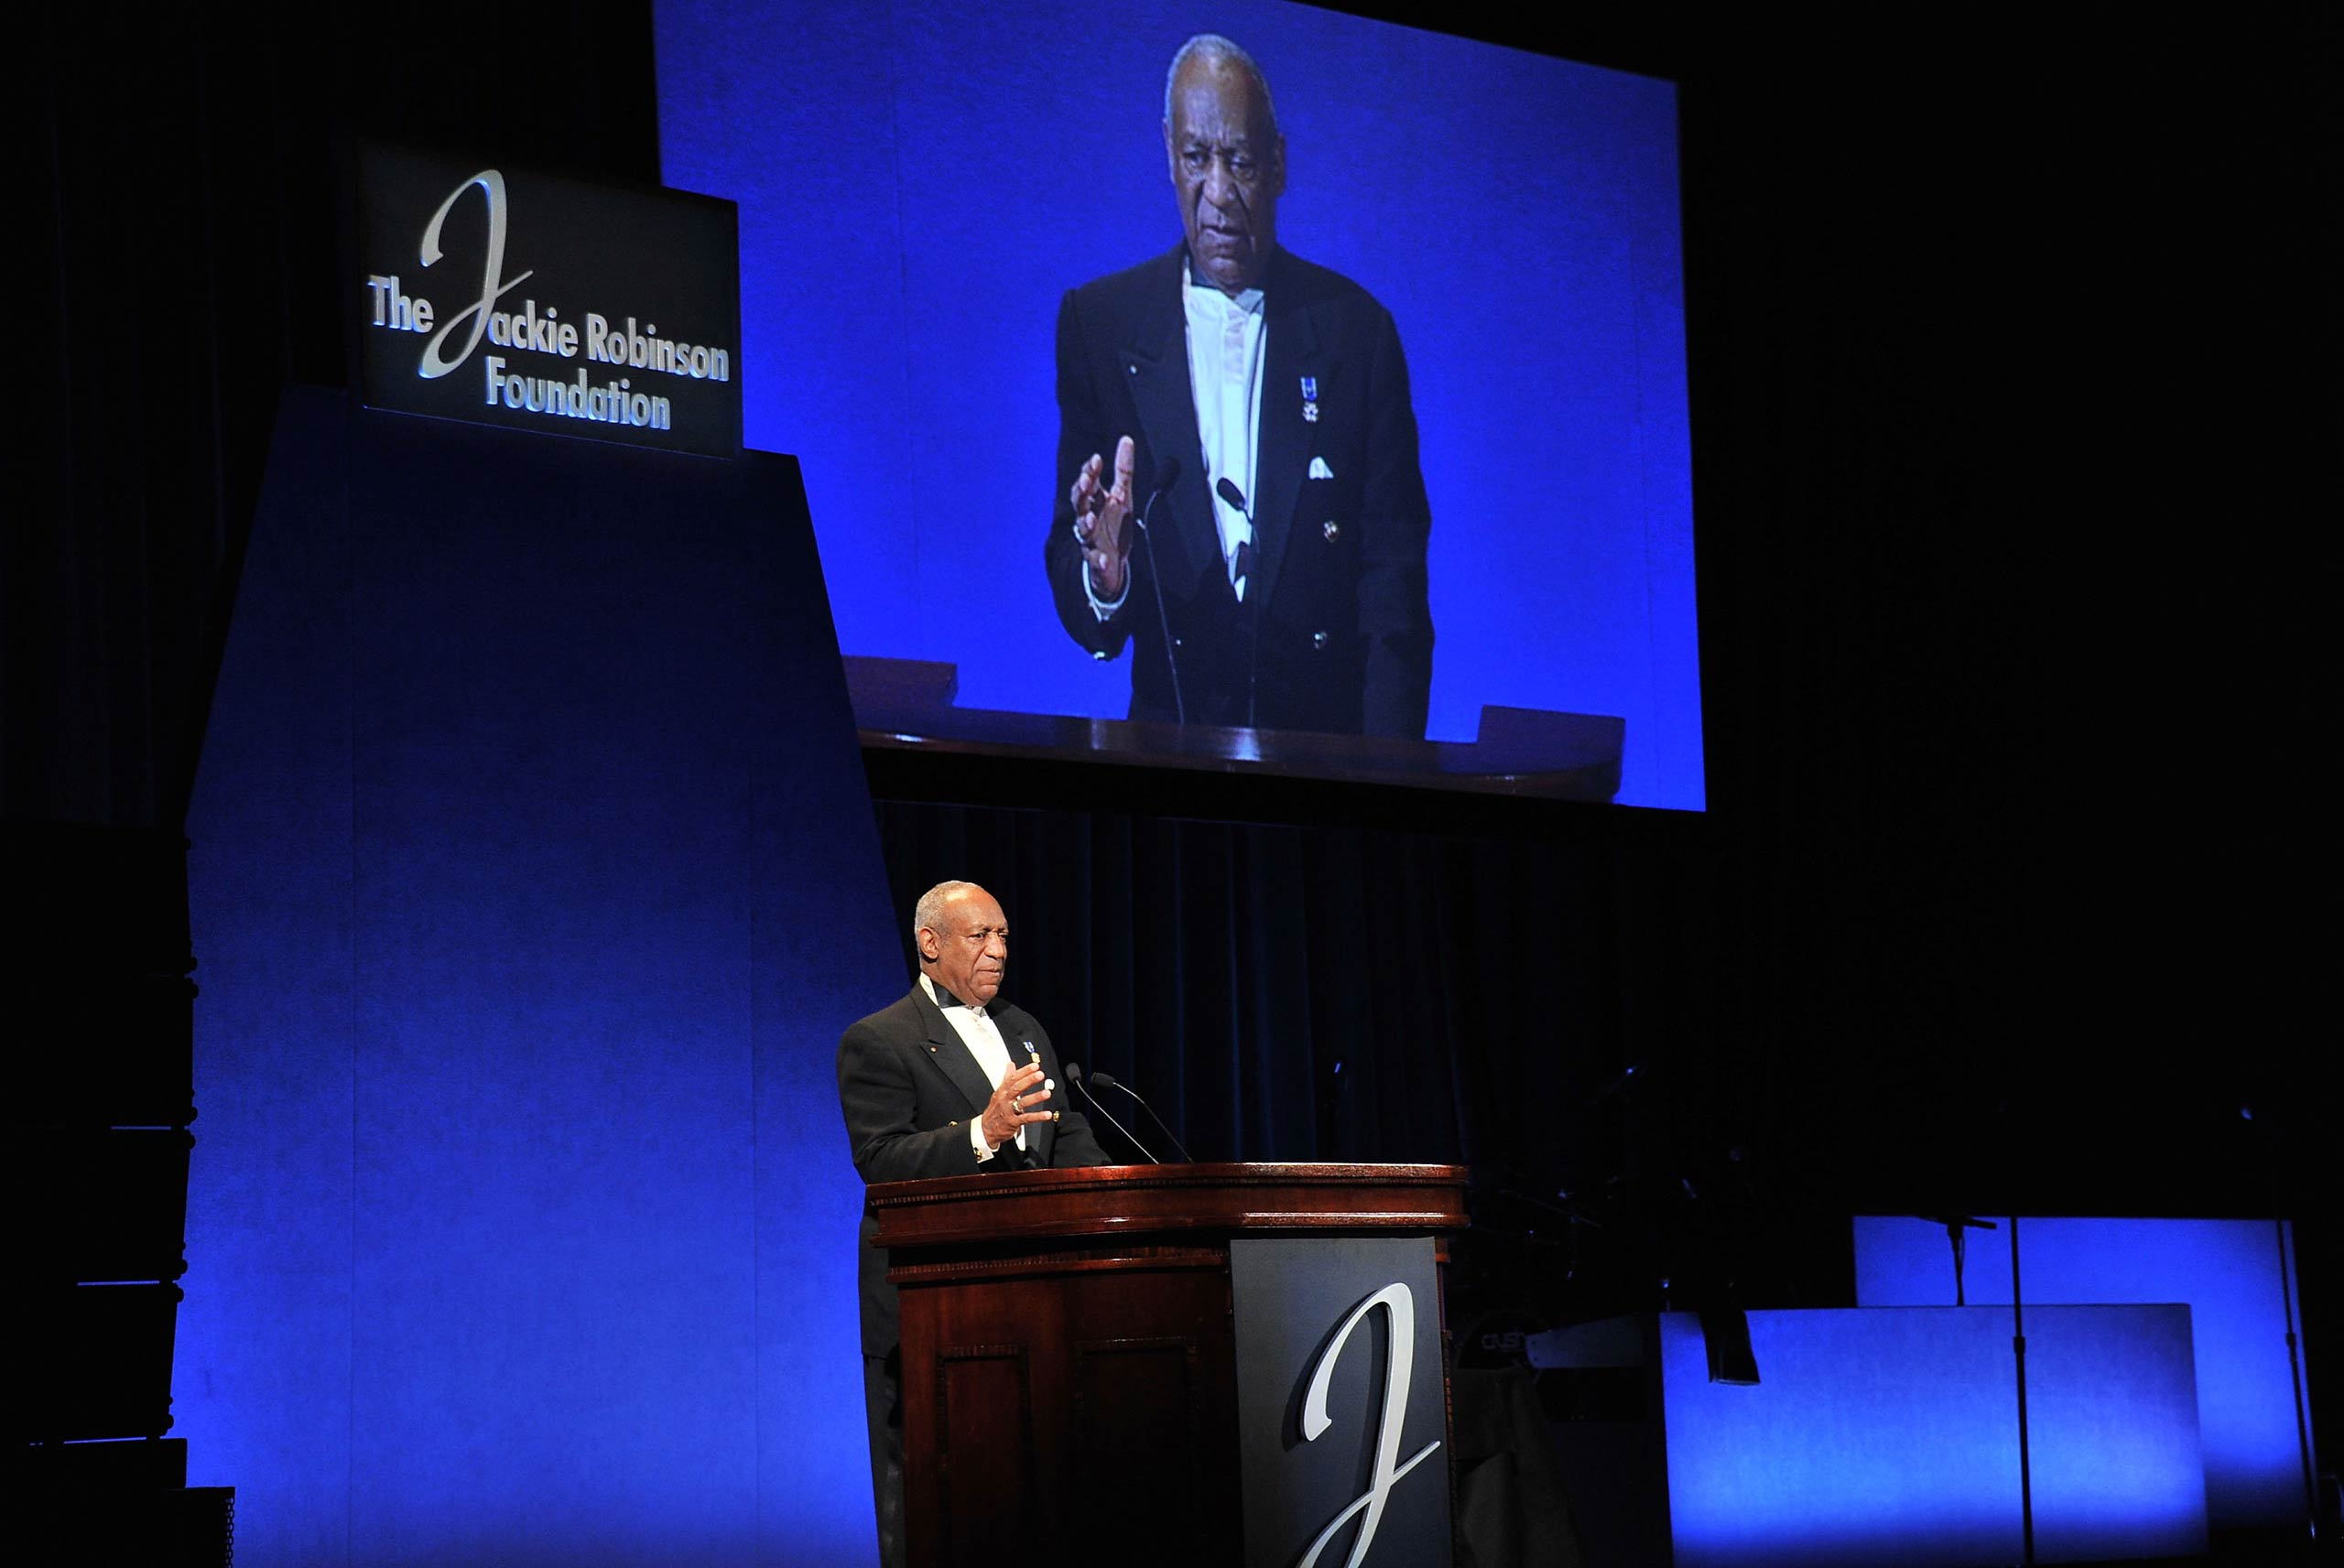 Host Bill Cosby speaks onstage at the 2011 Jackie Robinson Foundation awards gala atThe Waldorf Astoria in 2011 in New York City.